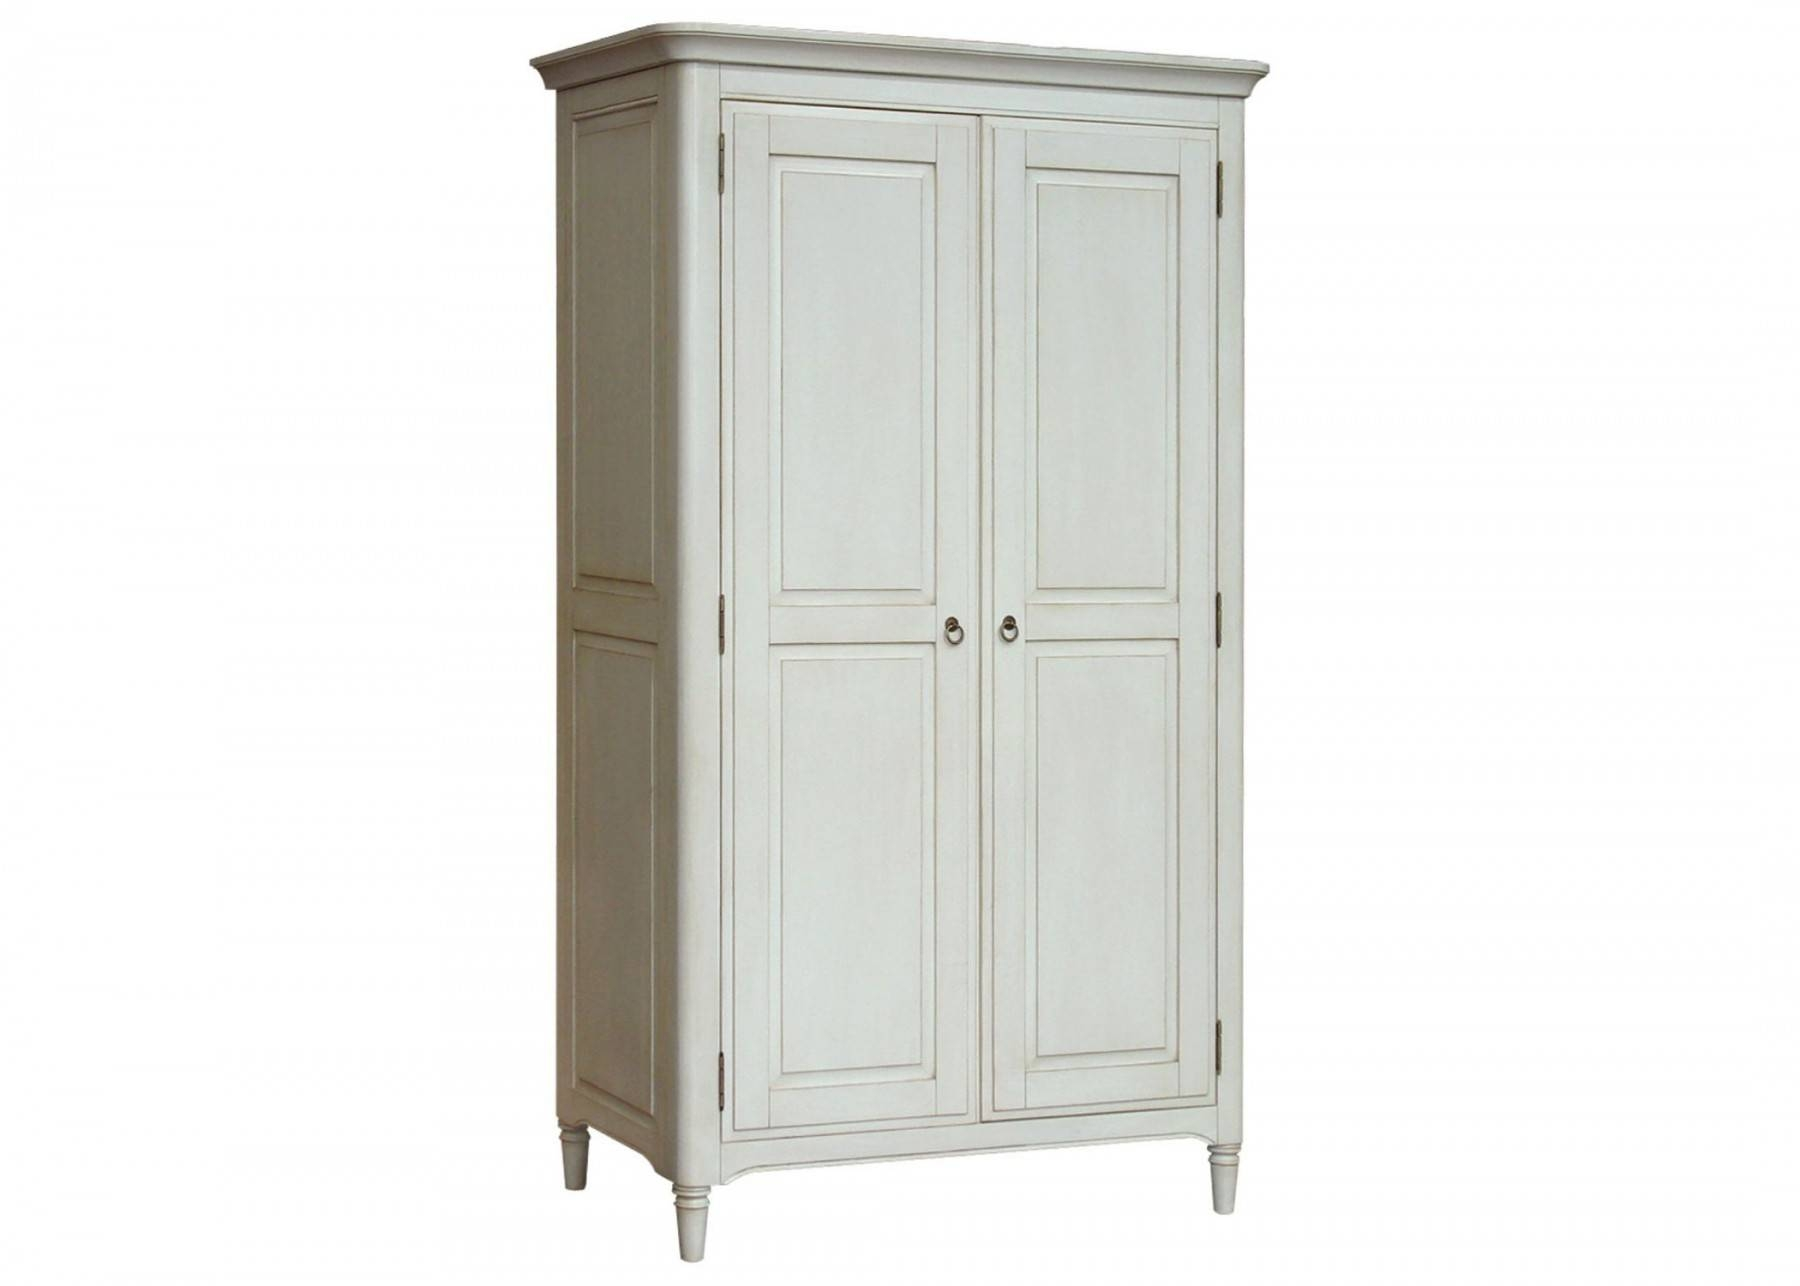 Hutch® - Tiffany White Painted Ladies Full Hanging Double Wardrobe pertaining to White Painted Wardrobes (Image 7 of 15)